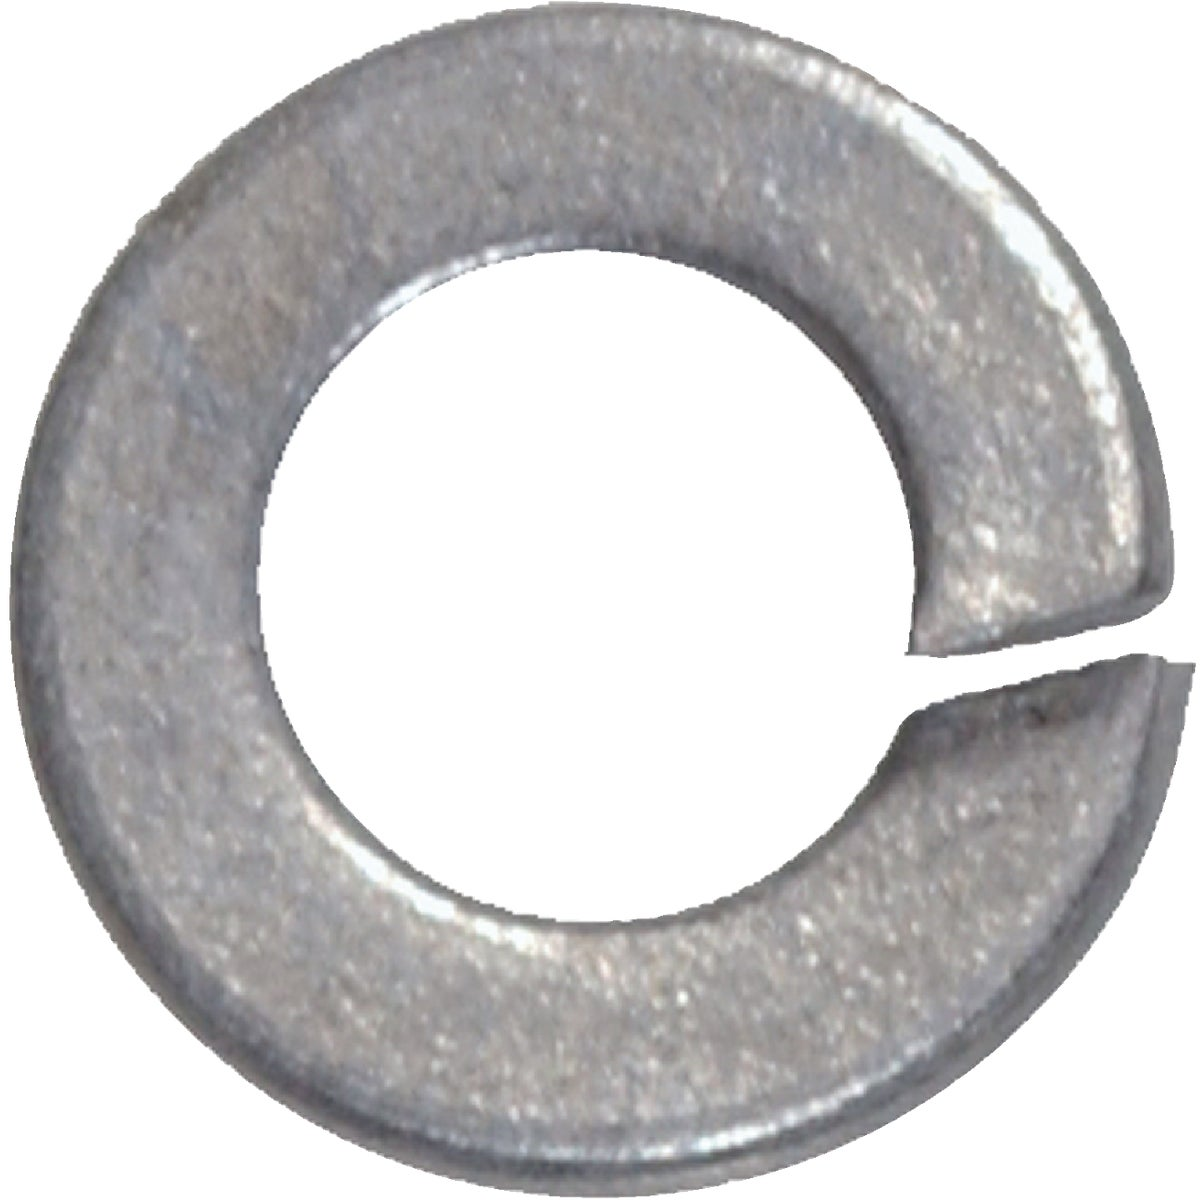 "1/4"" SPLIT LOCK WASHER - 811050 by Hillman Fastener"